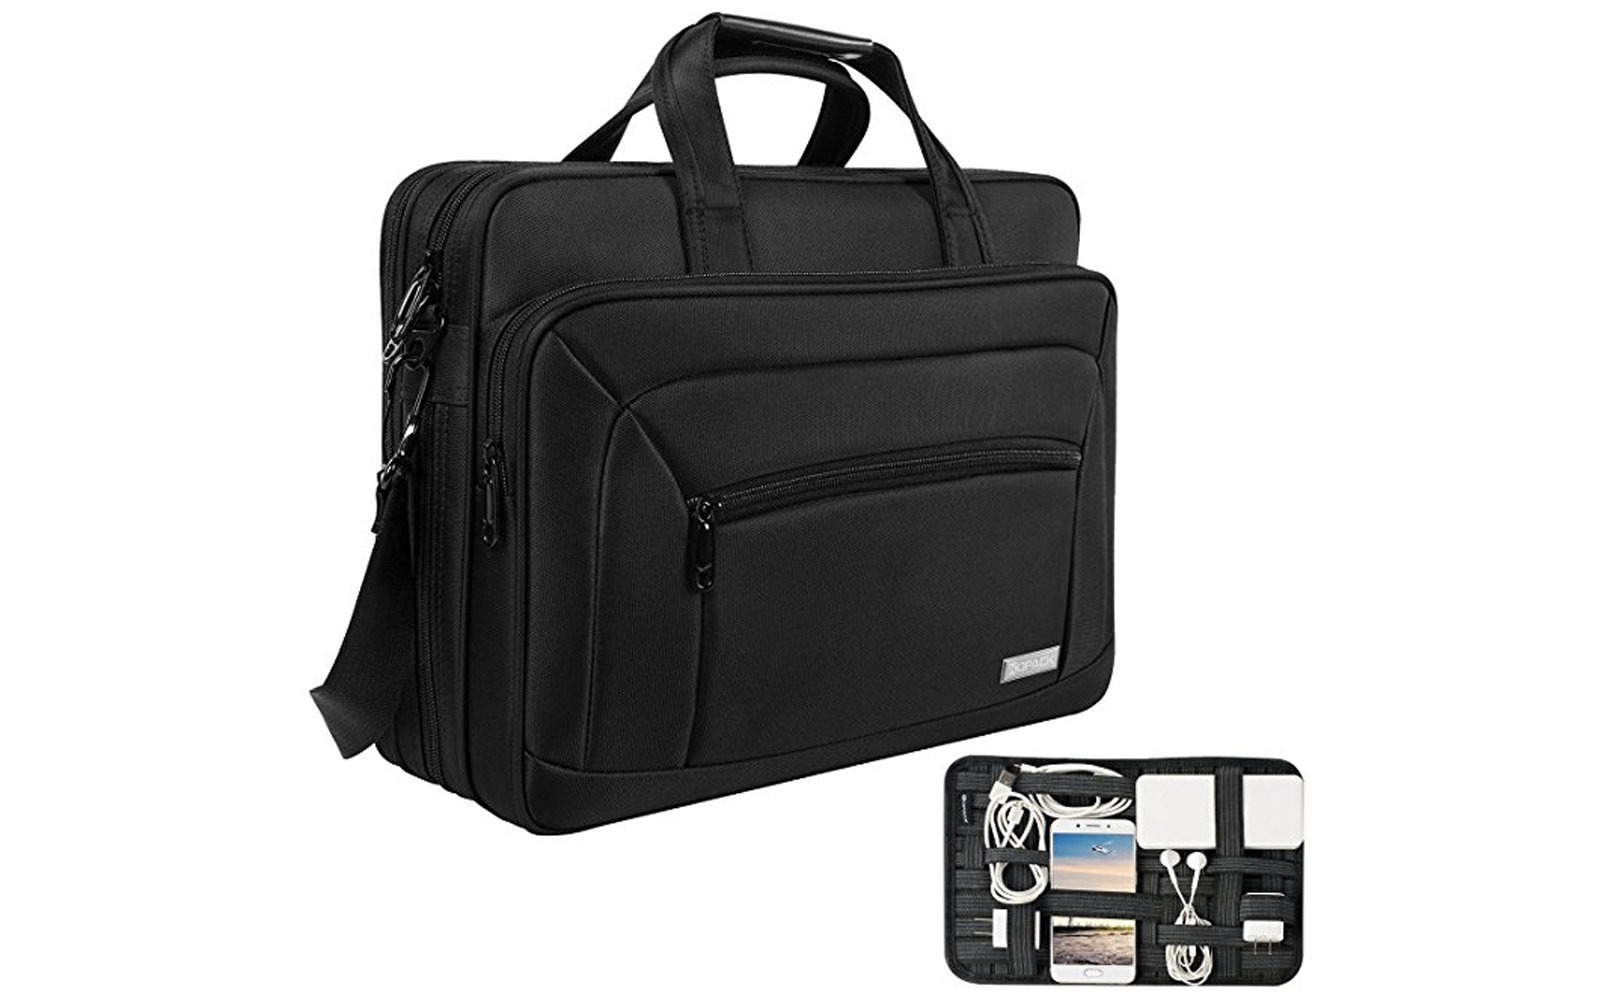 c21b852b98 Kopack Laptop Organizer Bag. Best Laptop Bags